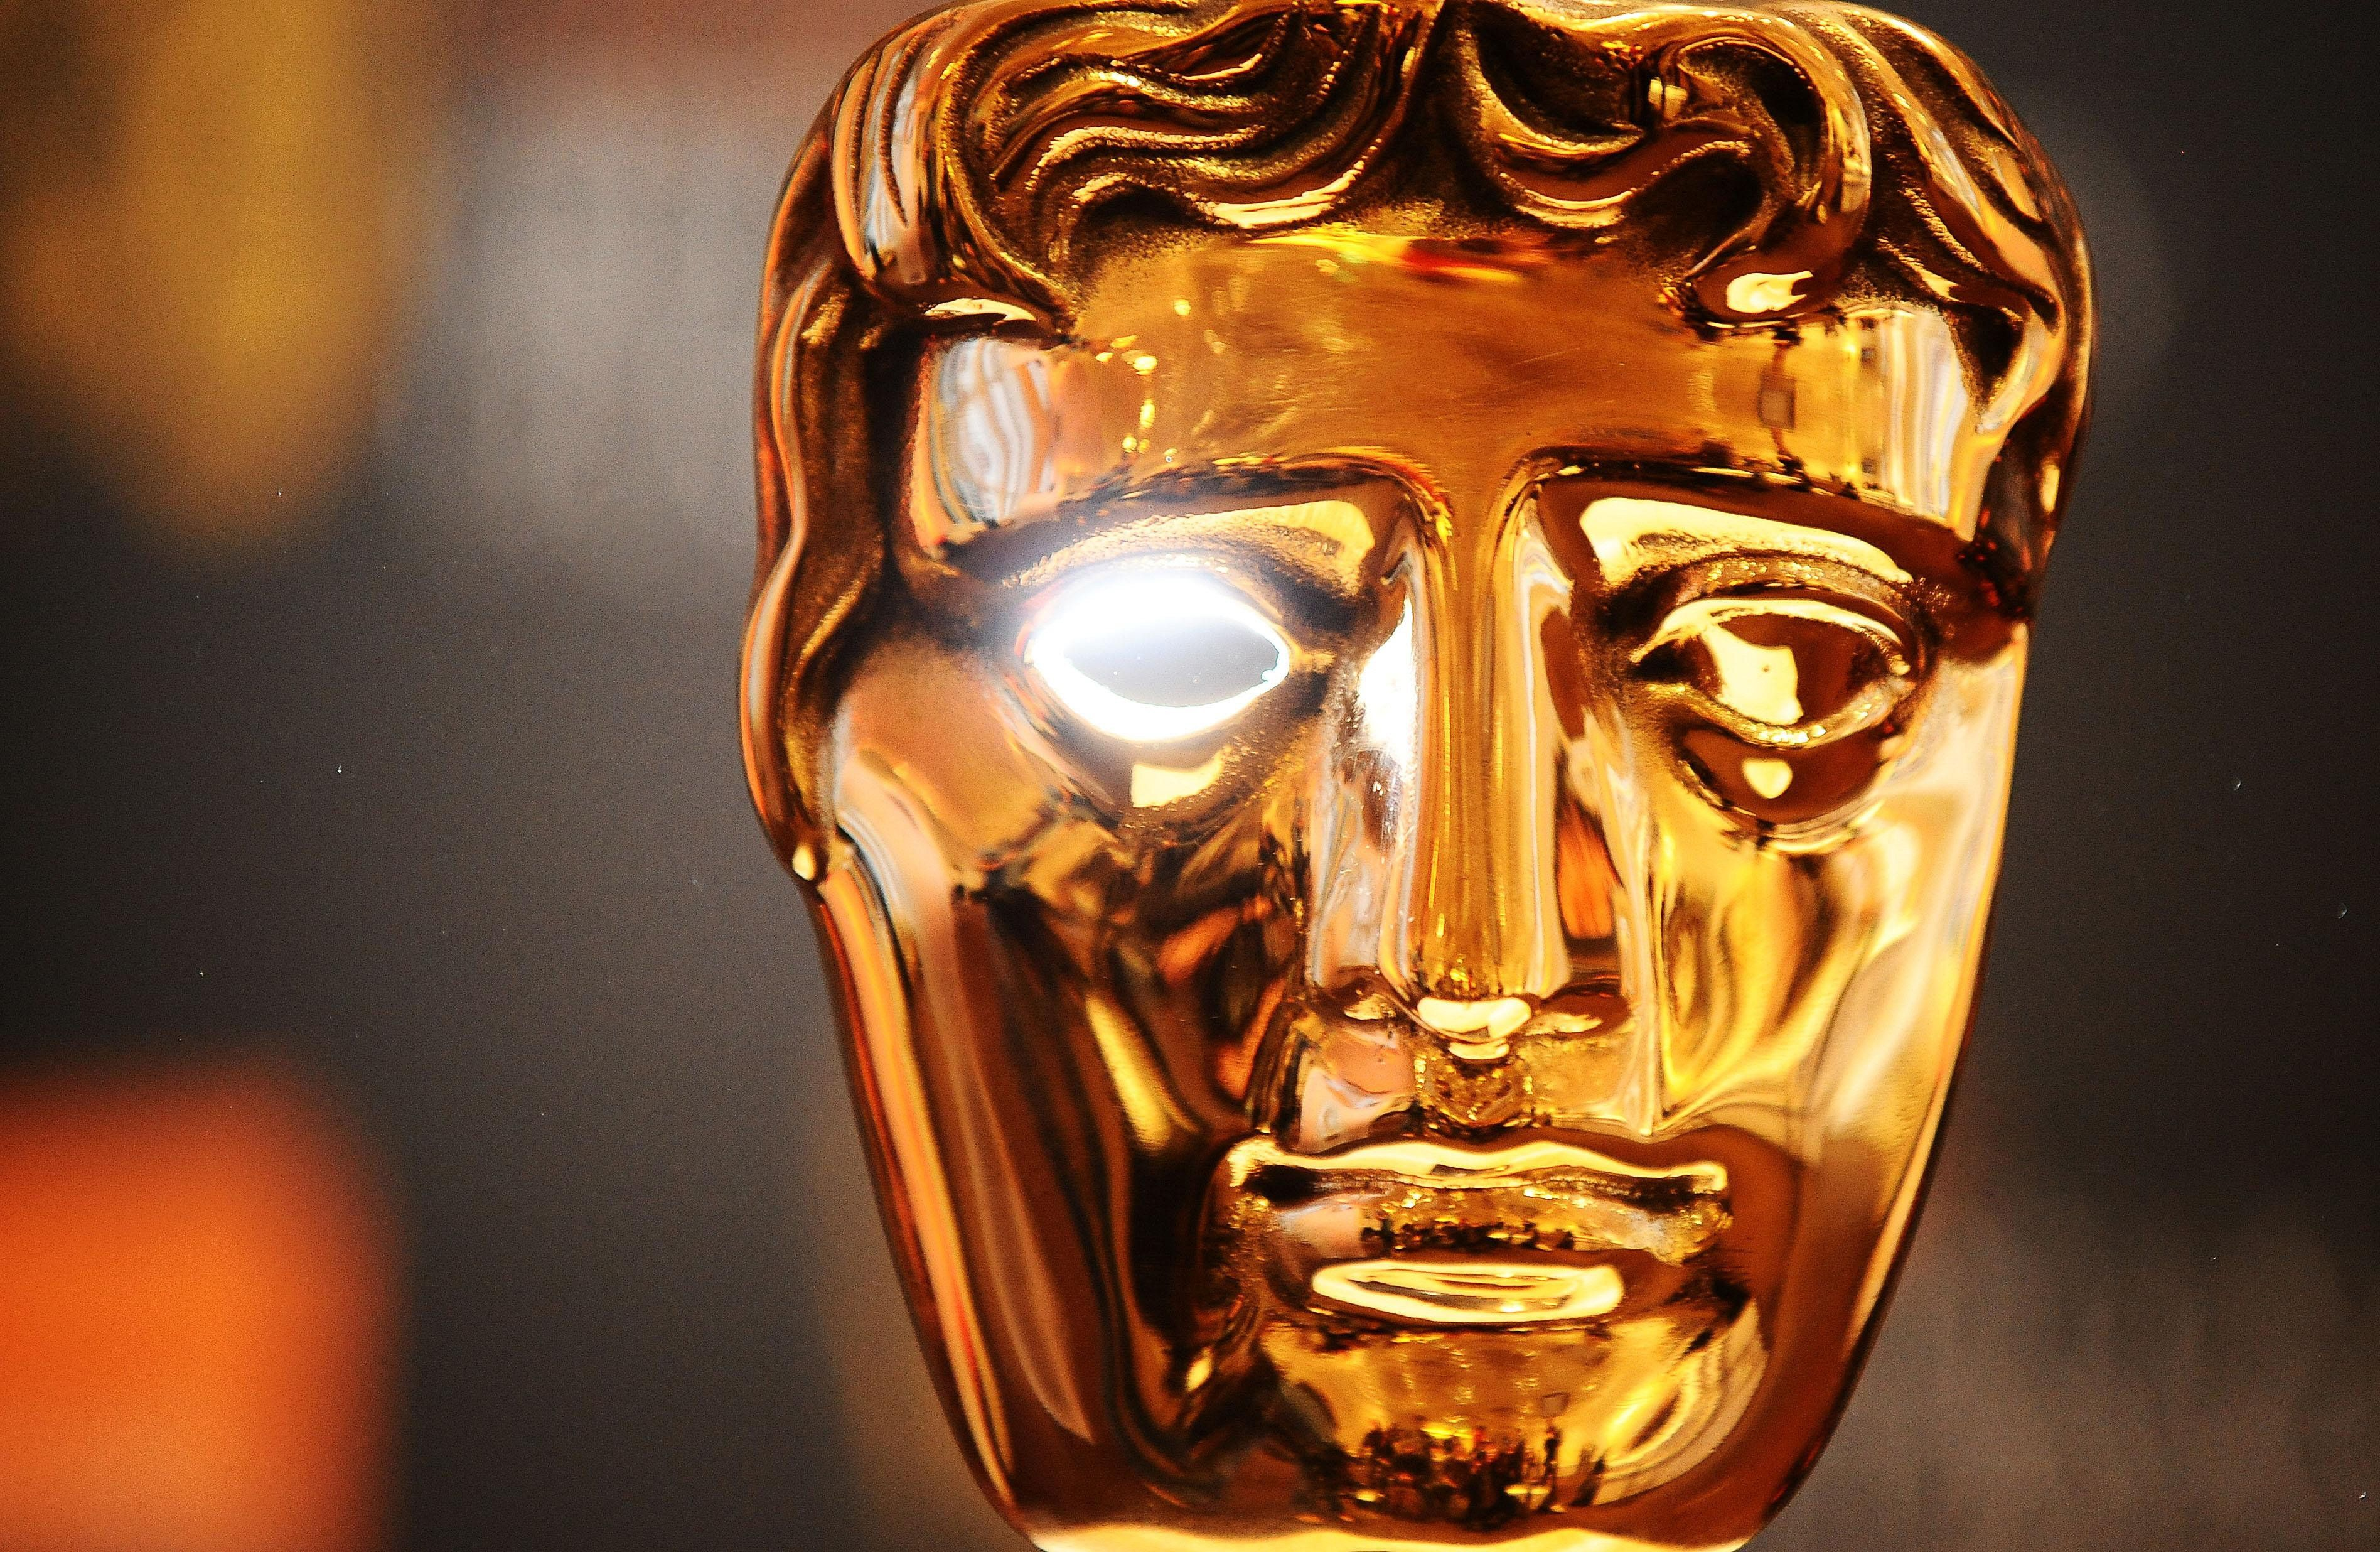 COMPETITION: Win Two Tickets To The 2018 EE Baftas Plus Other Exclusive